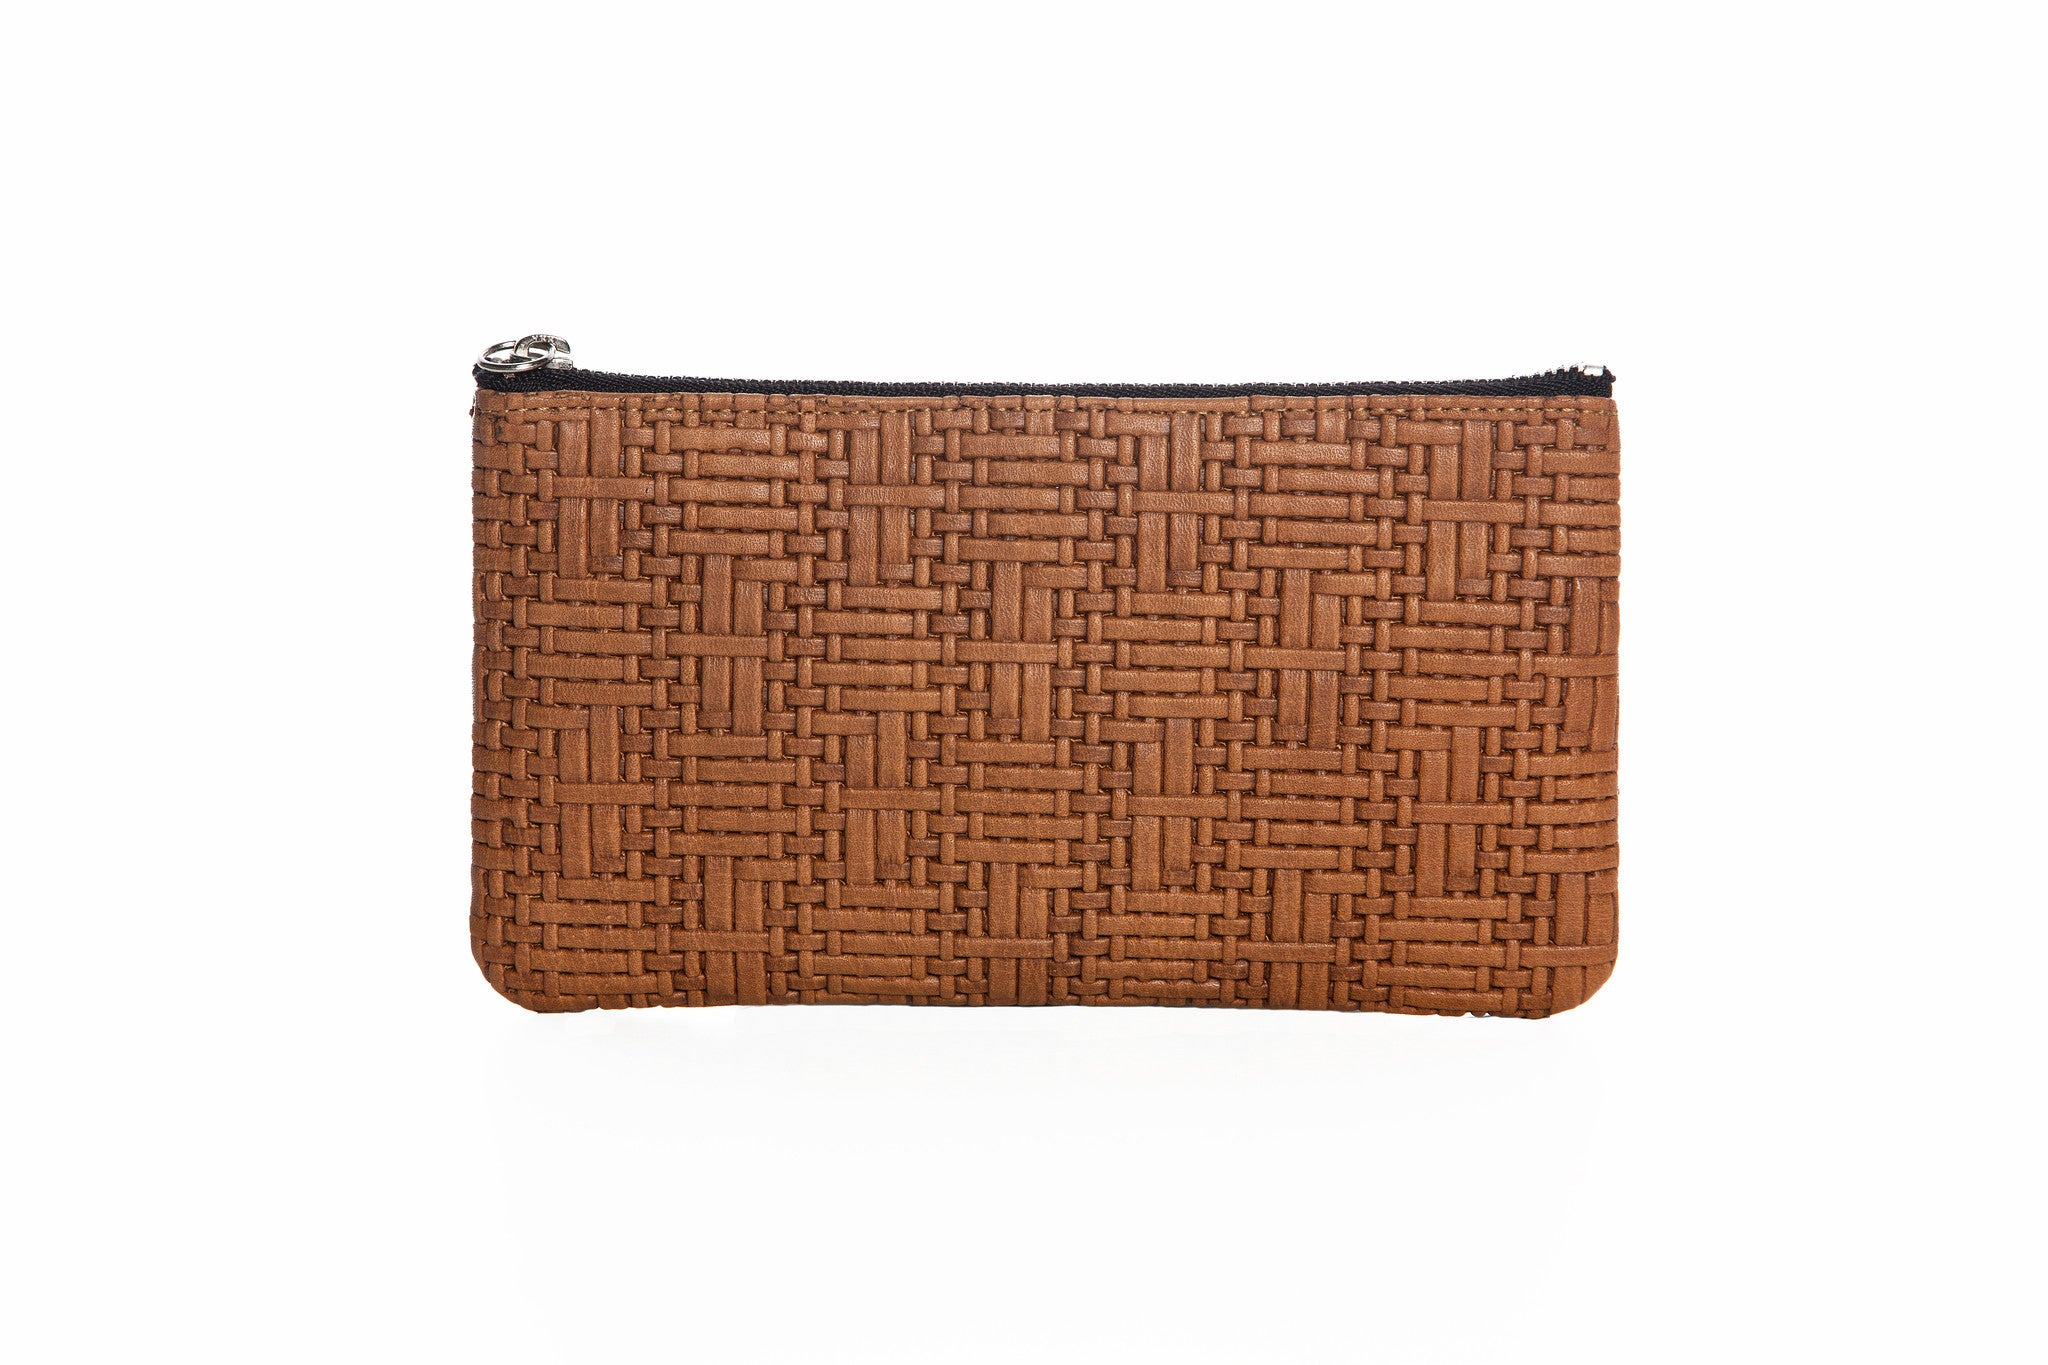 Susan Wallet - Cela New York